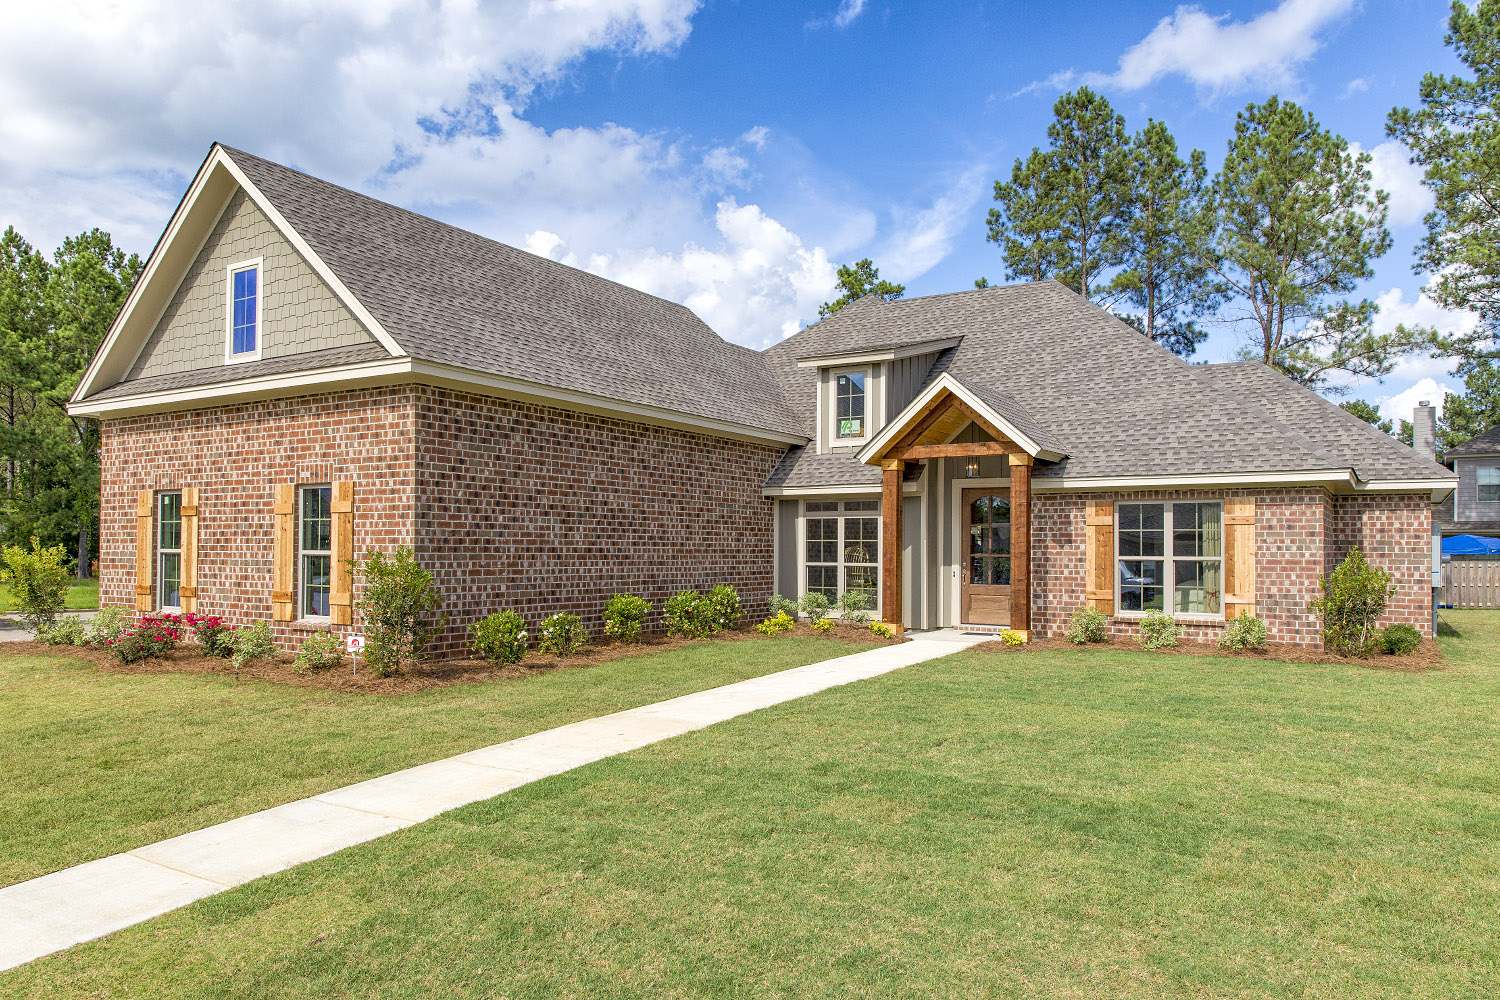 Well manicured flower beds, fresh pine straw, and freshly cut grass make all the difference